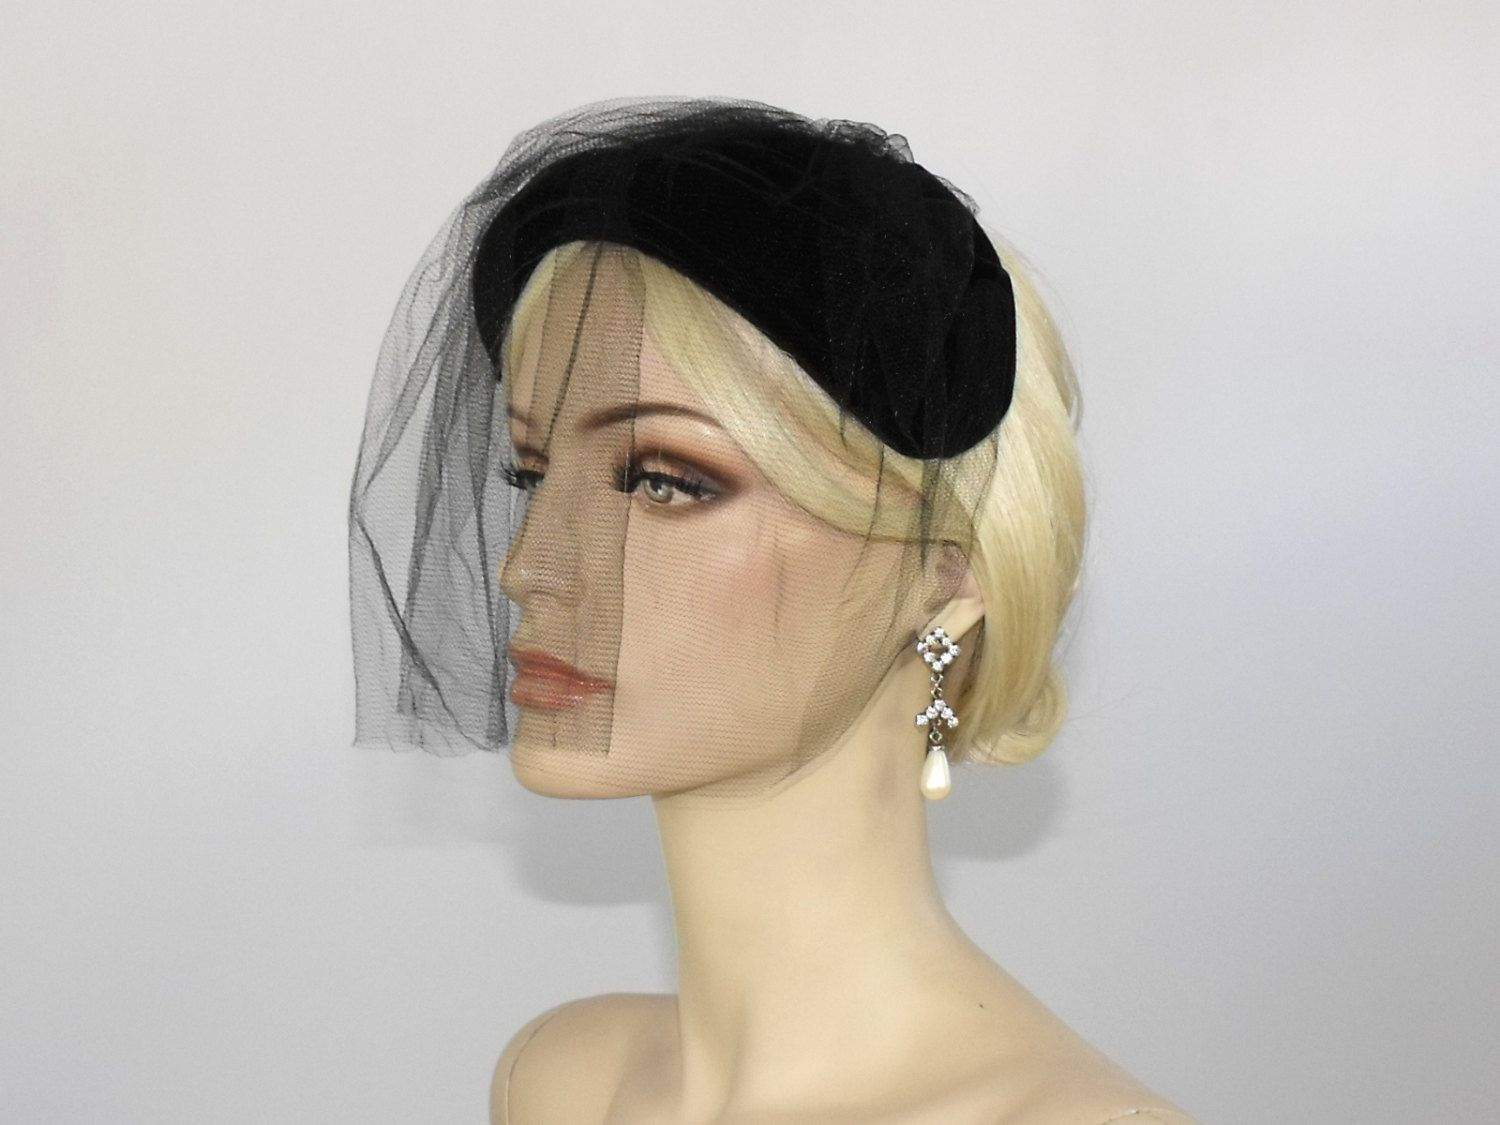 1940 s Black Velvet Cocktail Hat with Veil    Vintage Mourning Veil     Steampunk Veil by WildWoodRoseVintage on Etsy 3ba4e468b83